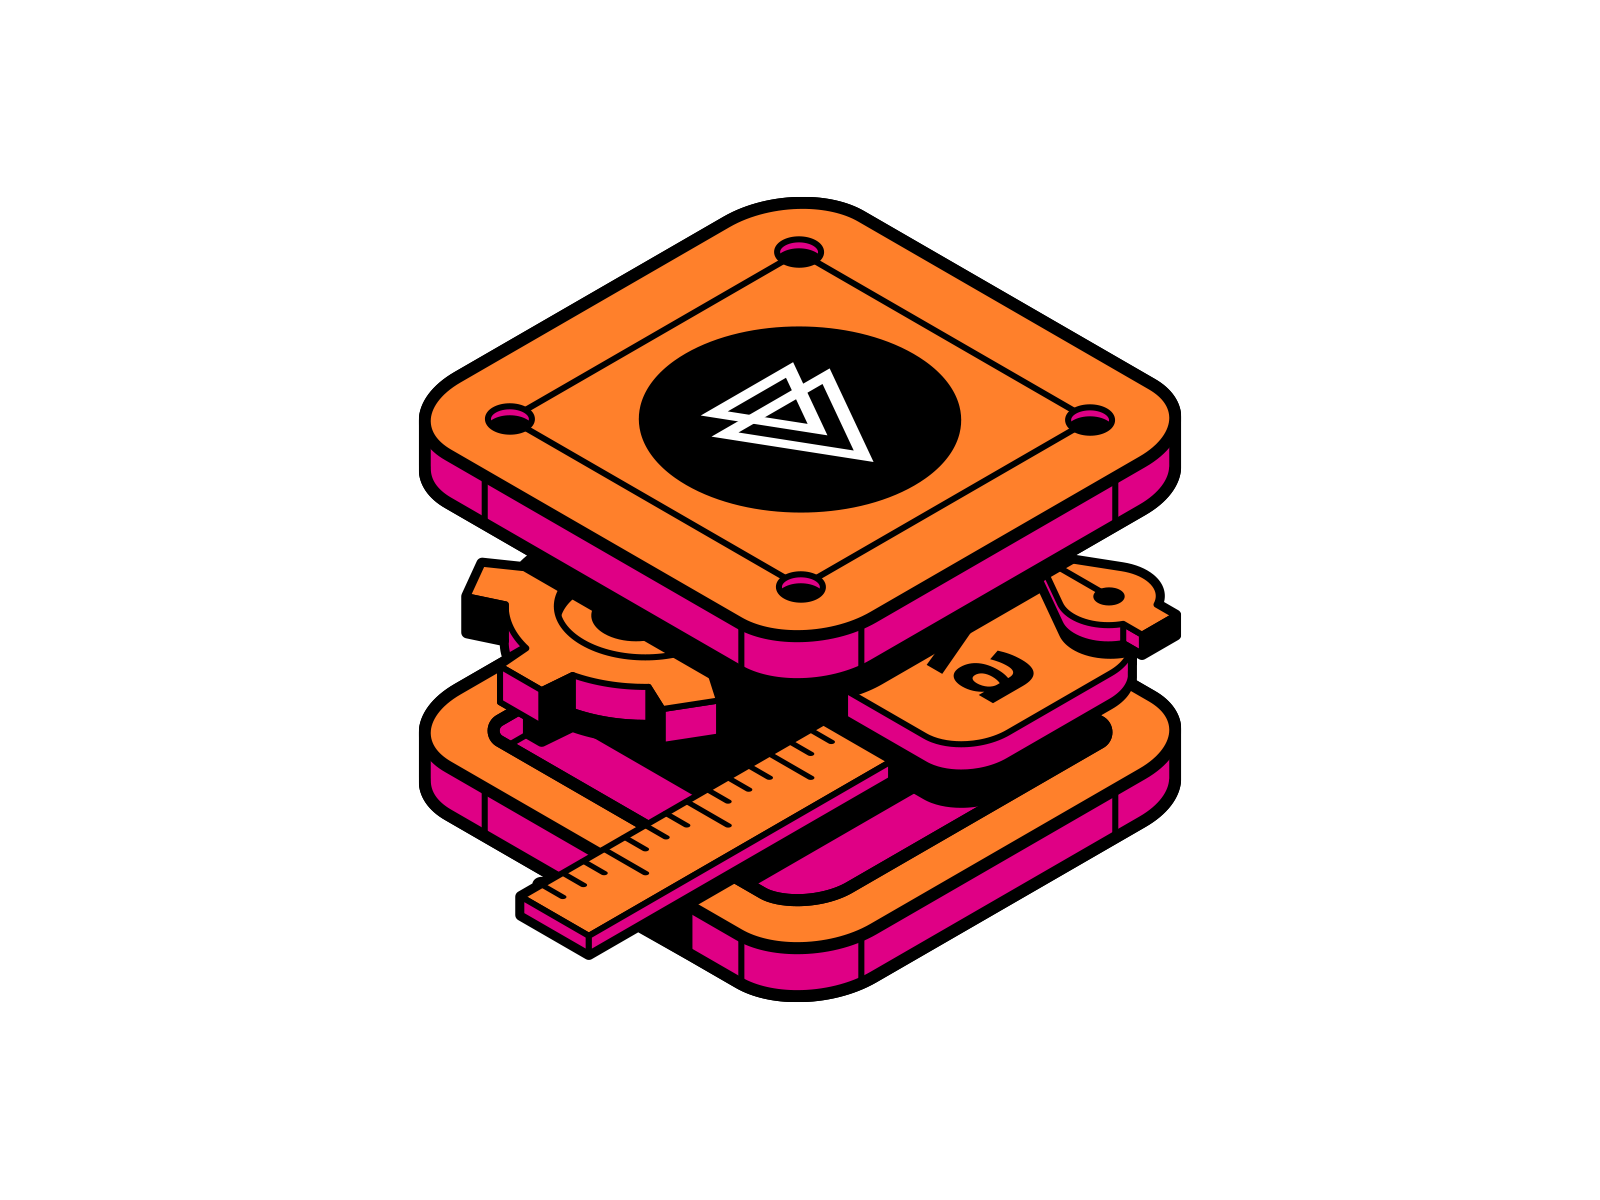 Pluralsight: Design System Sticker by Justin Mezzell for.